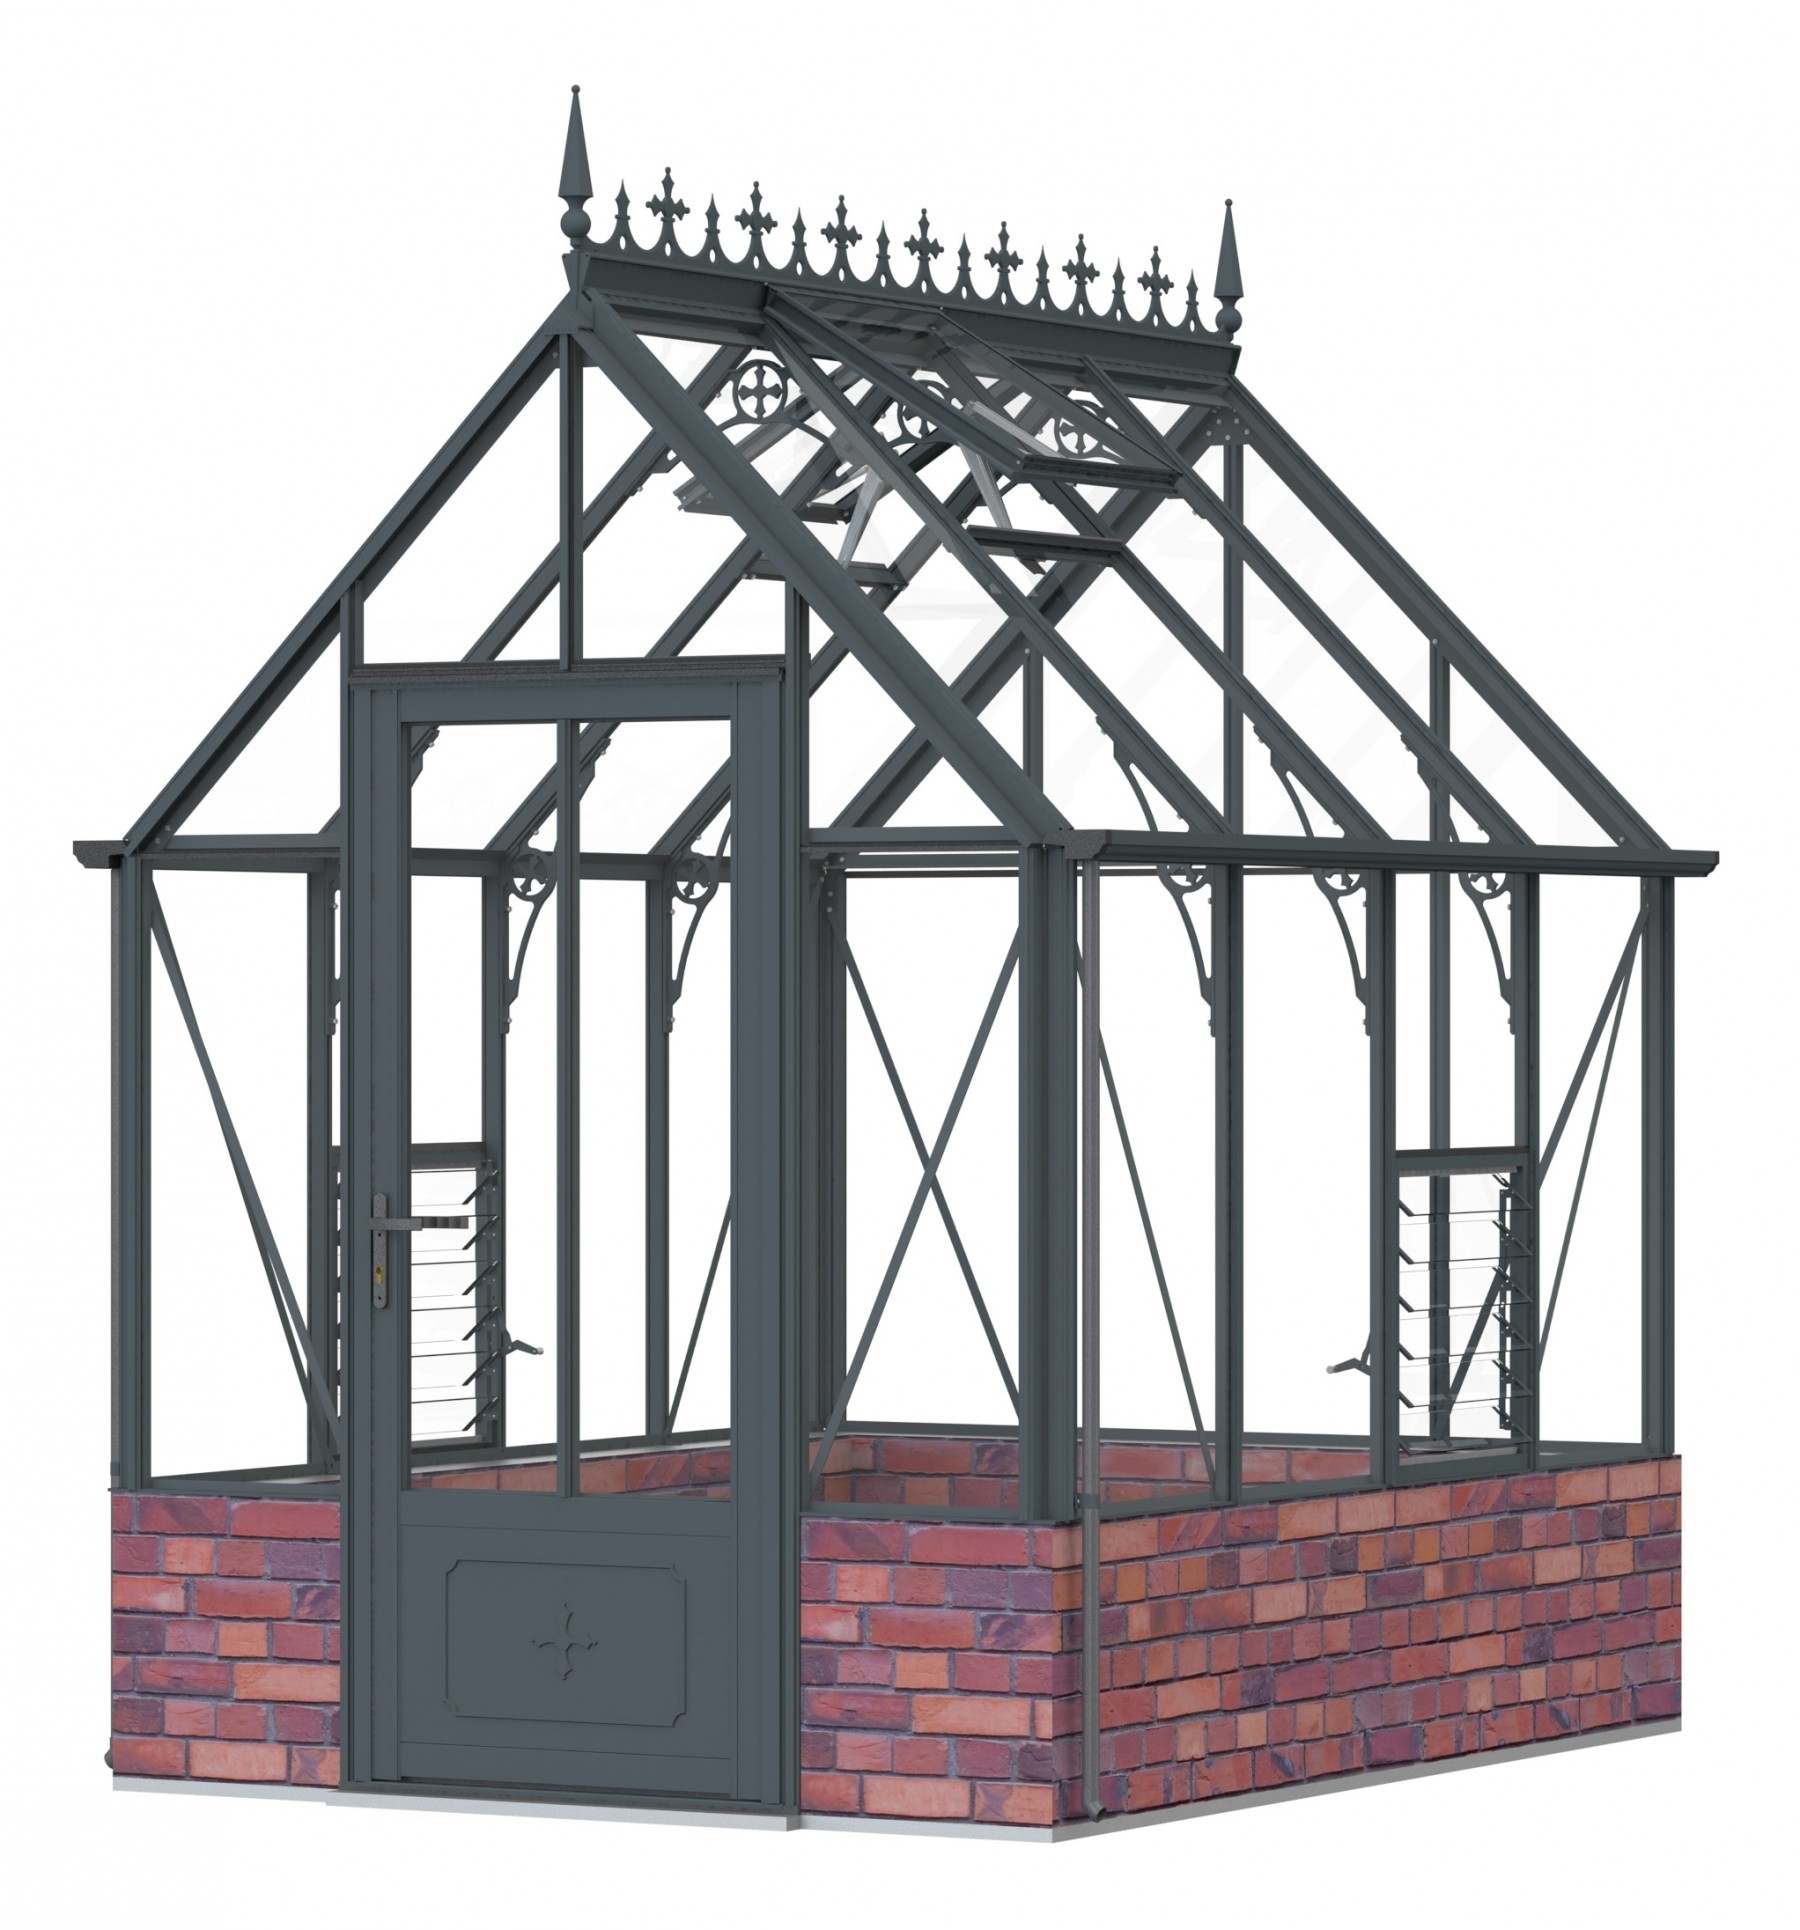 Robinsons Rugby dwarf wall Anthracite 6ft x 8ft